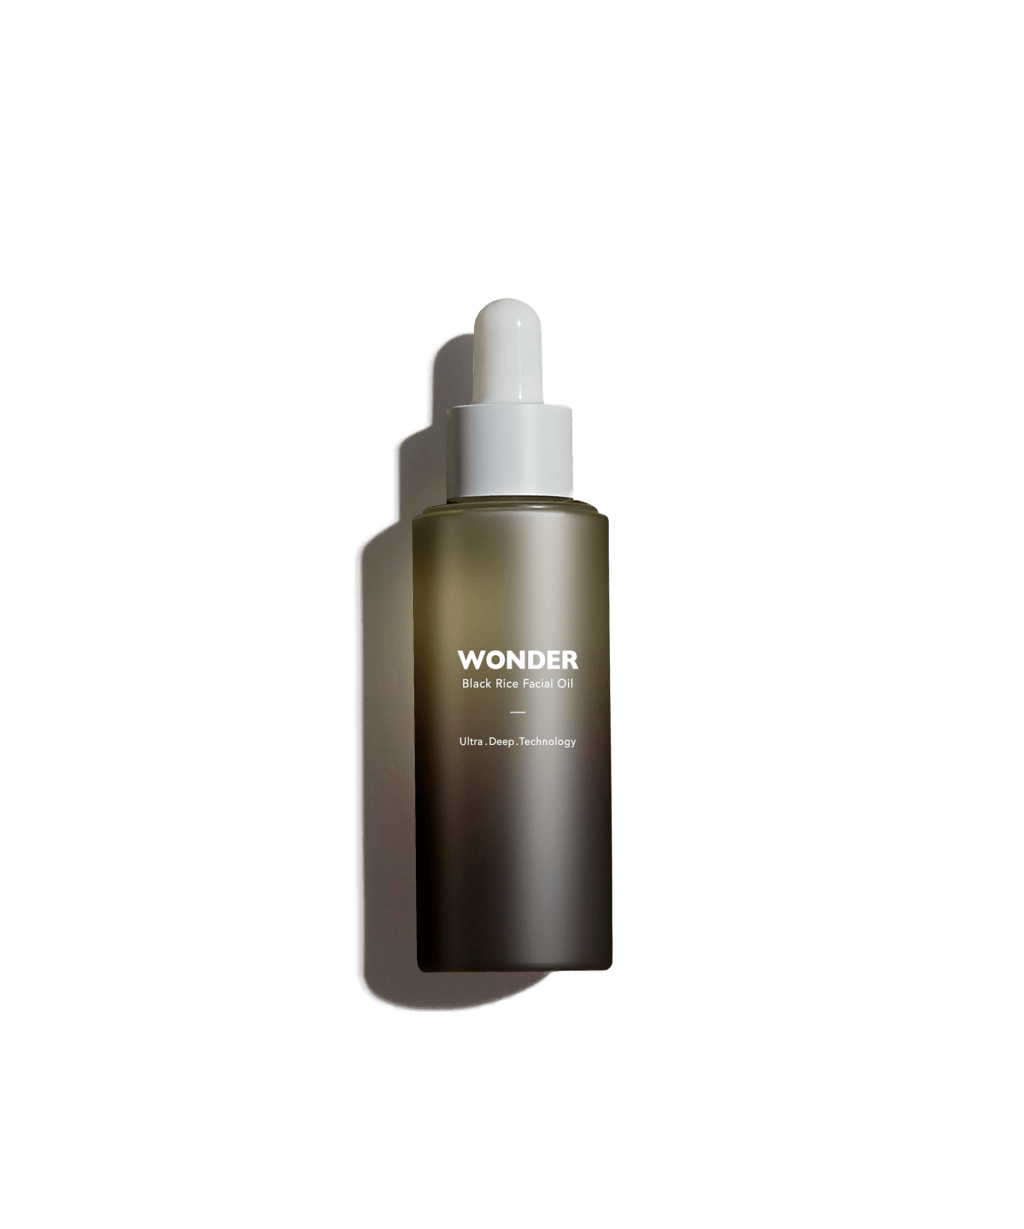 WONDER Black Rice Facial Oil 30ml